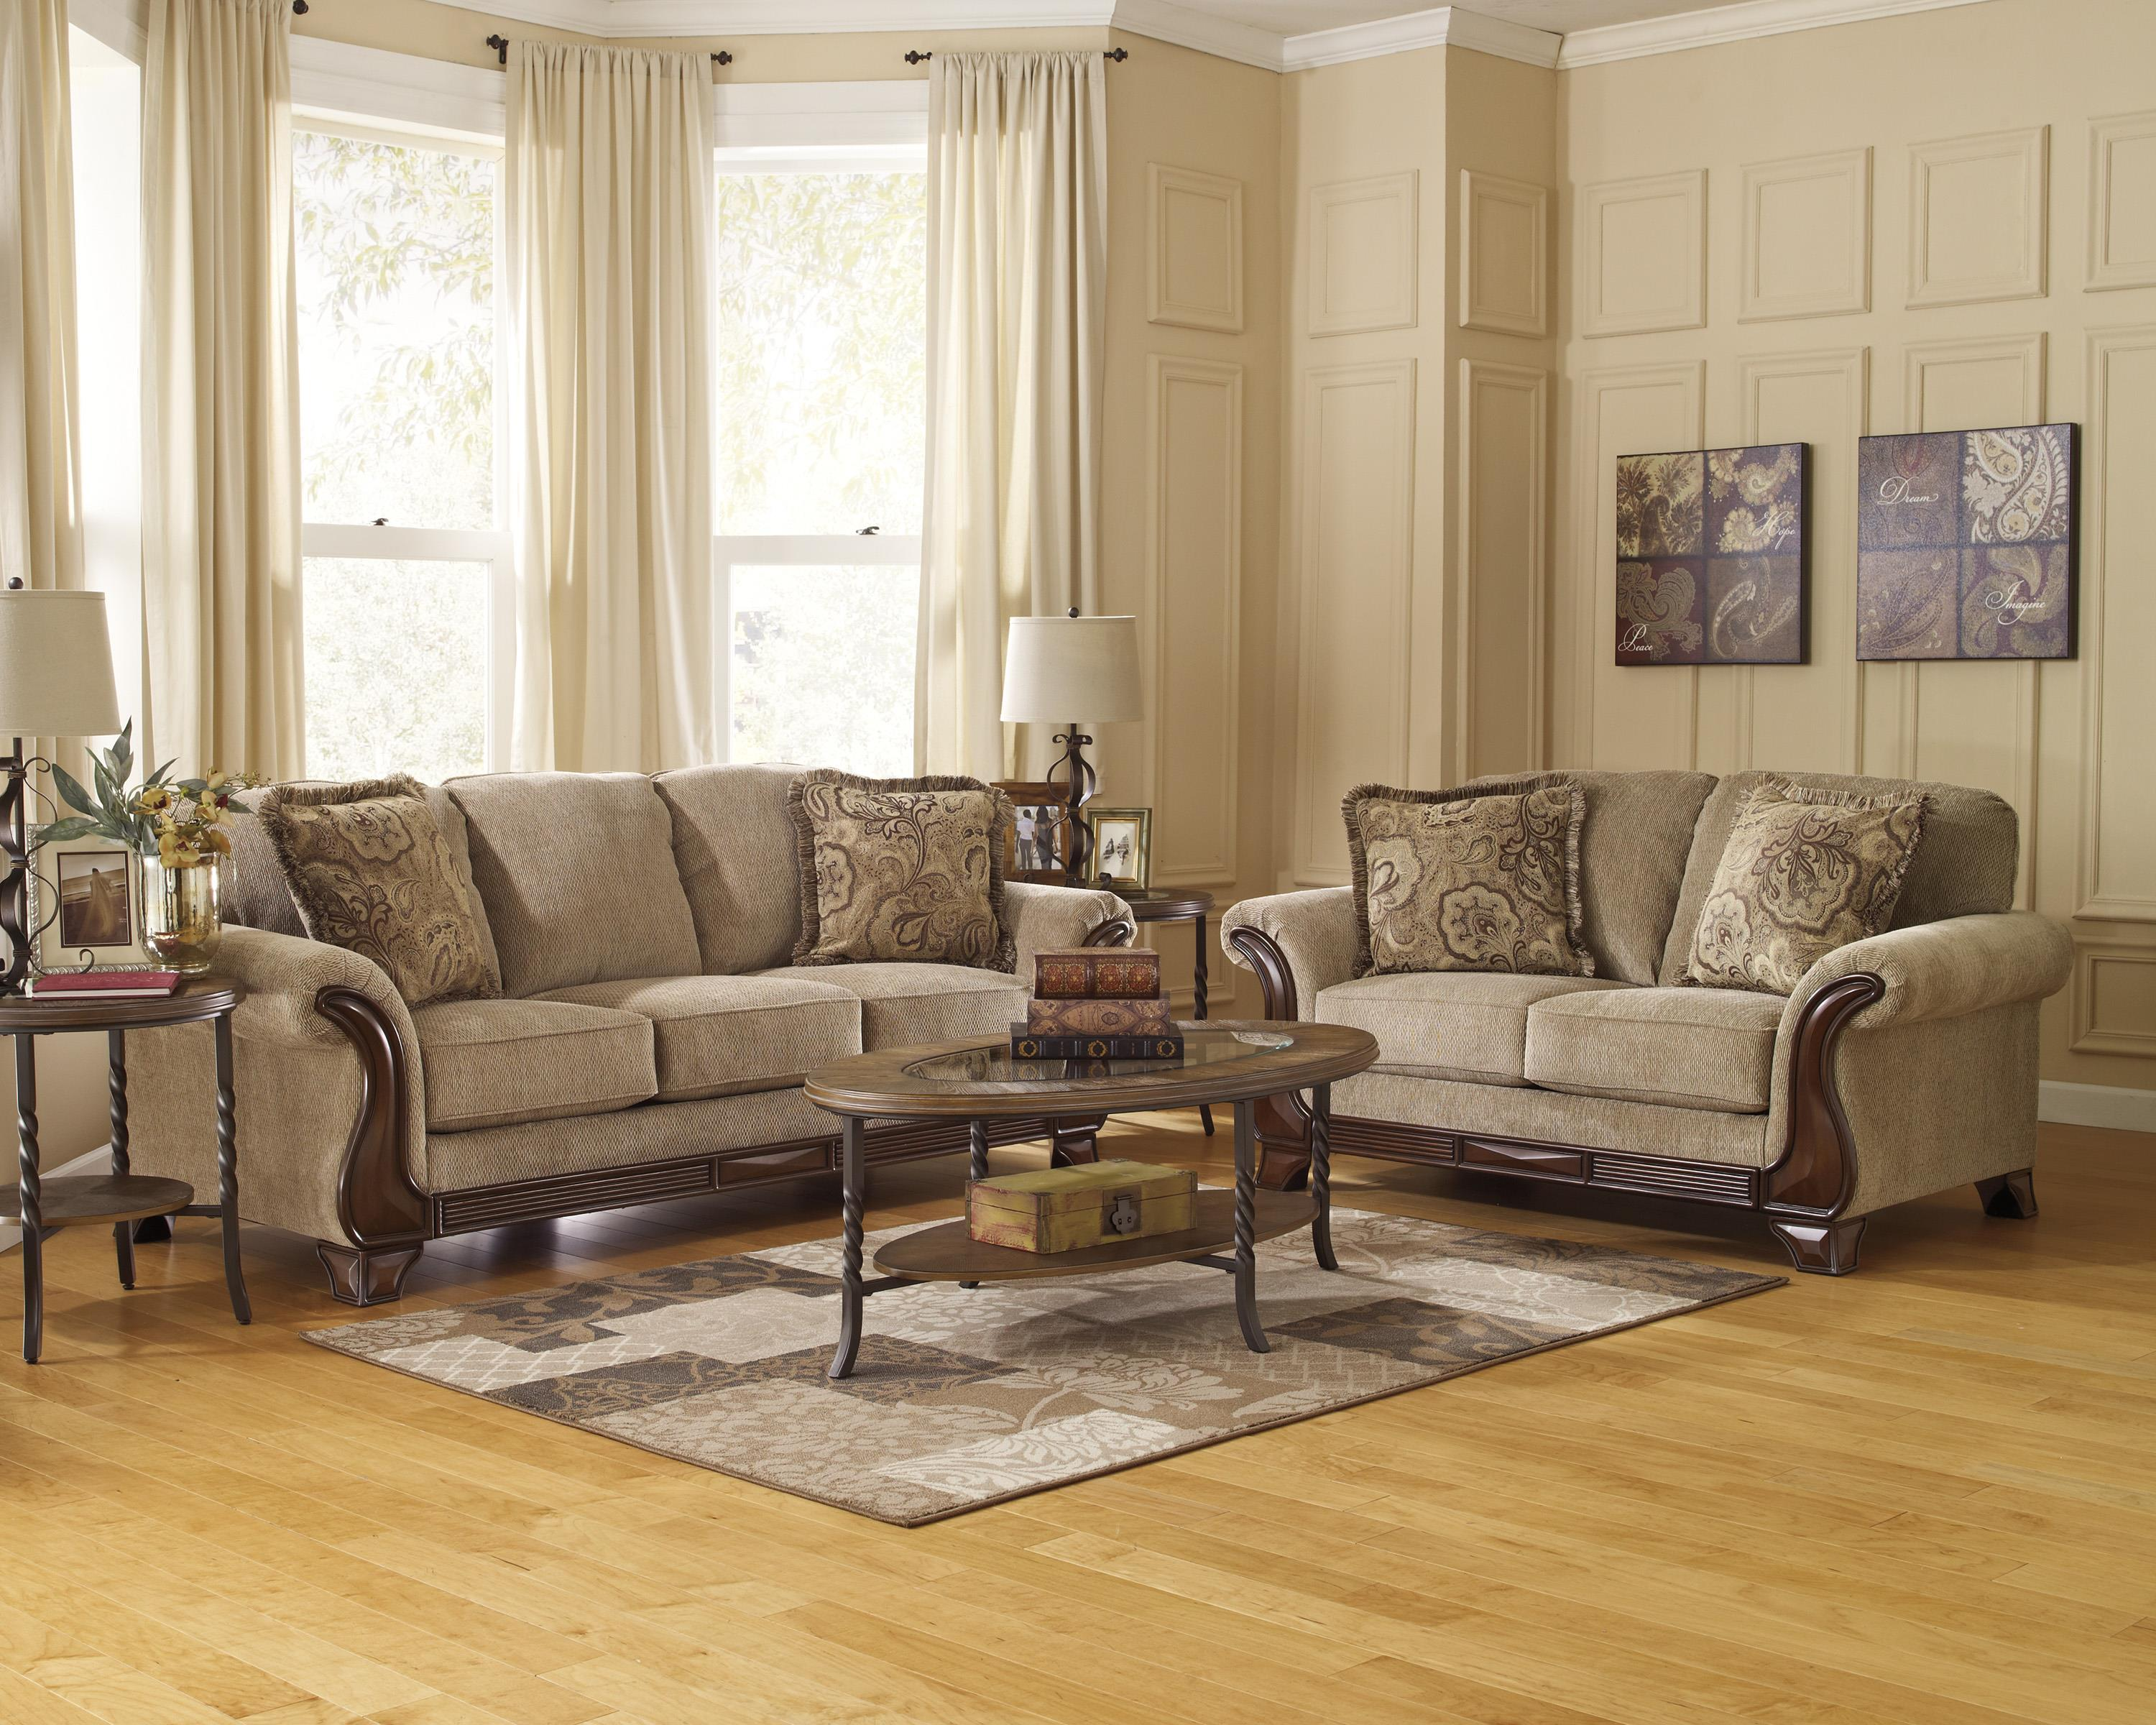 Queen Sofa Sleeper With With Memory Foam Mattress Flared